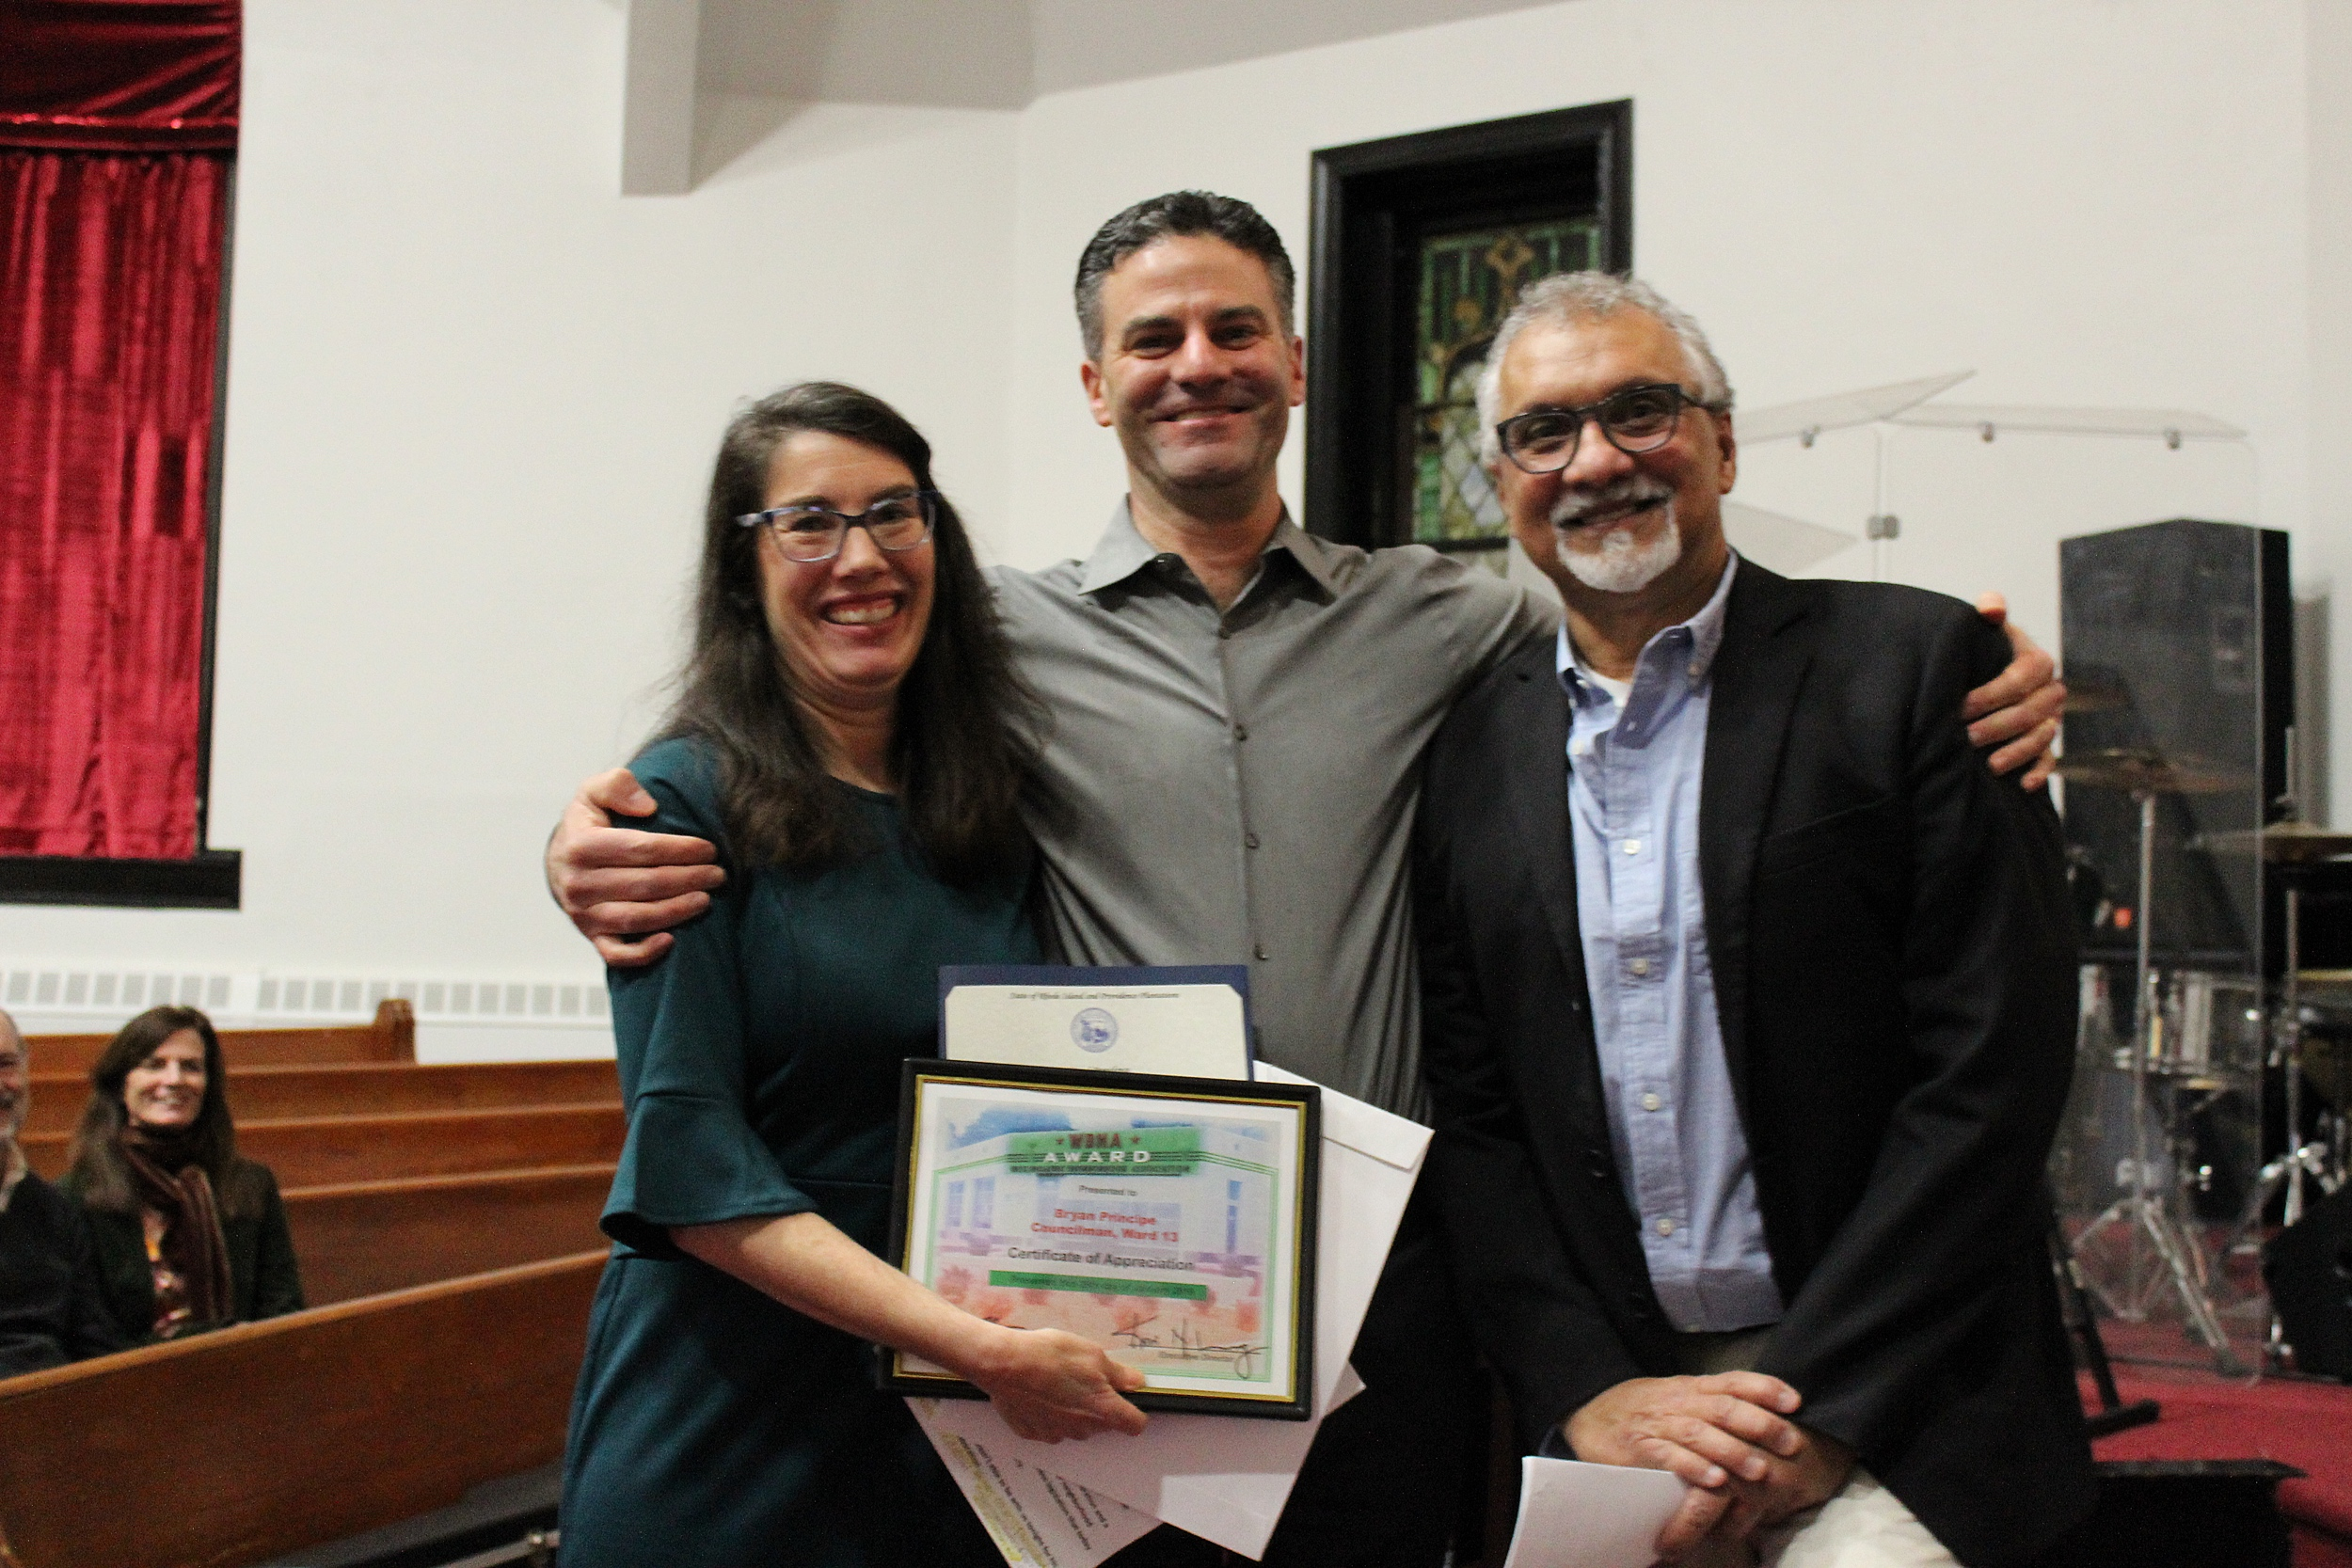 Certificate of Recognition Award: Councilman Bryan Principe